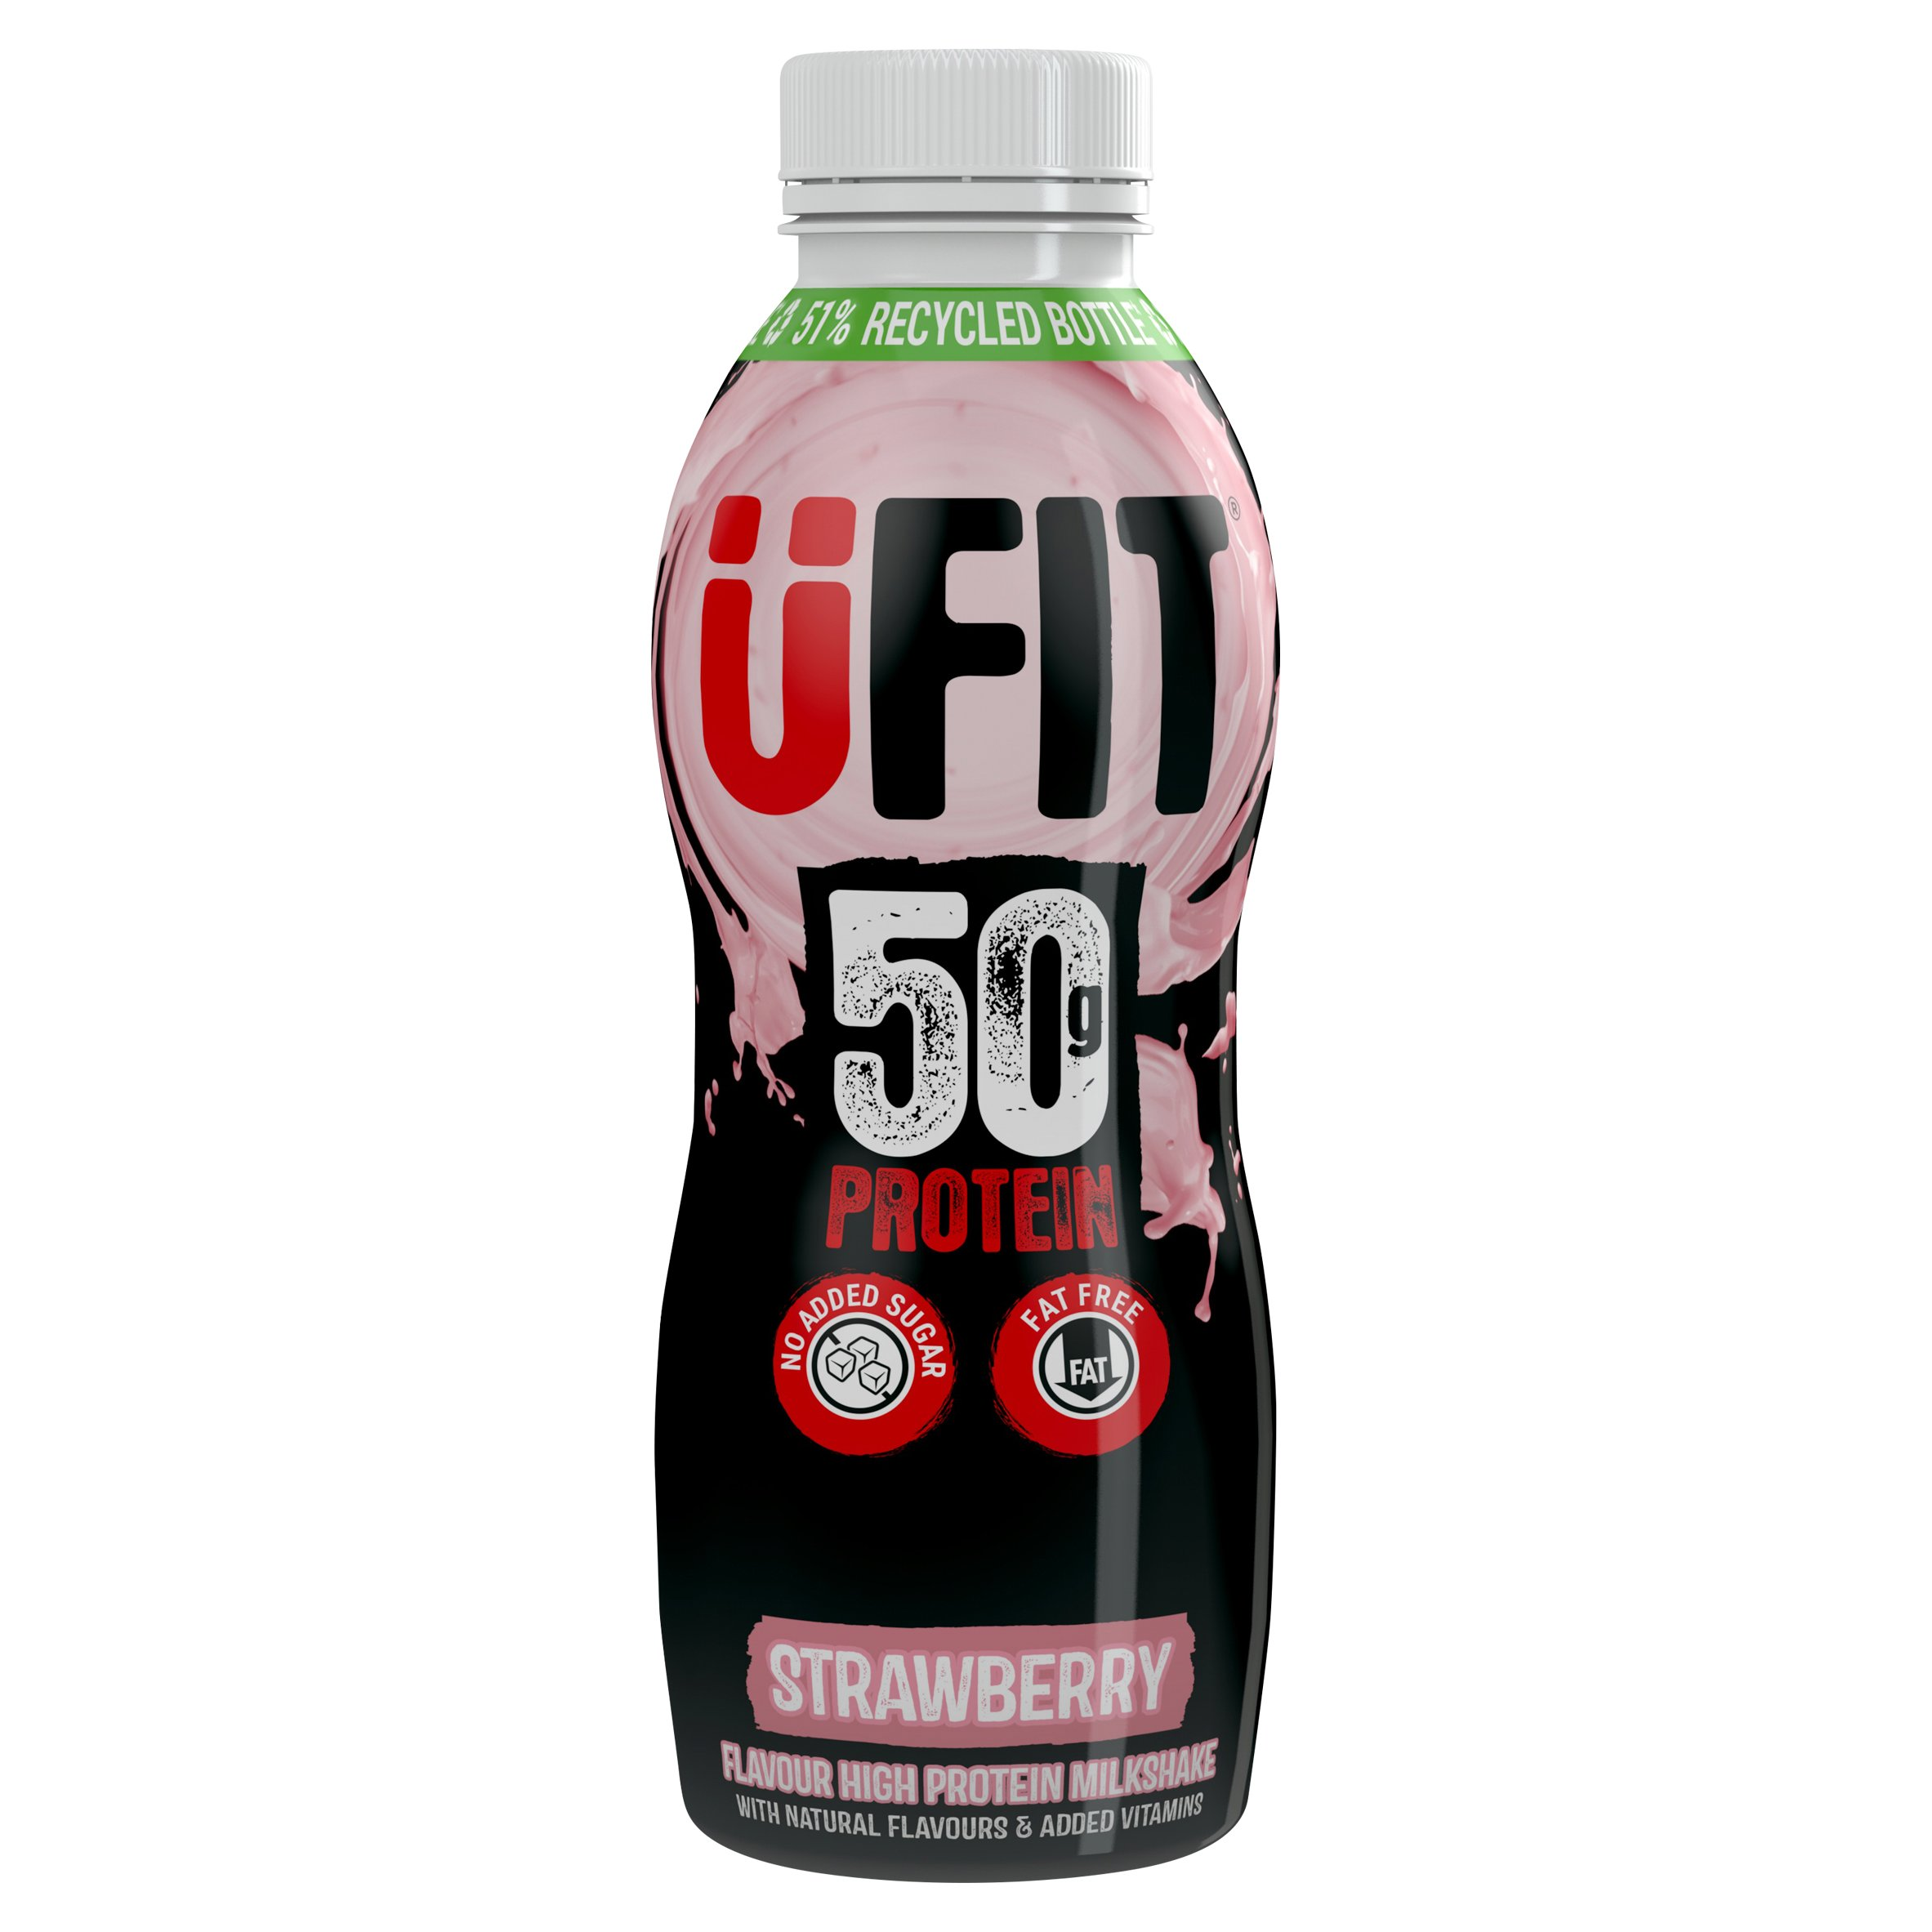 Ufit Pro50 Protein Drink Strawberry 500Ml